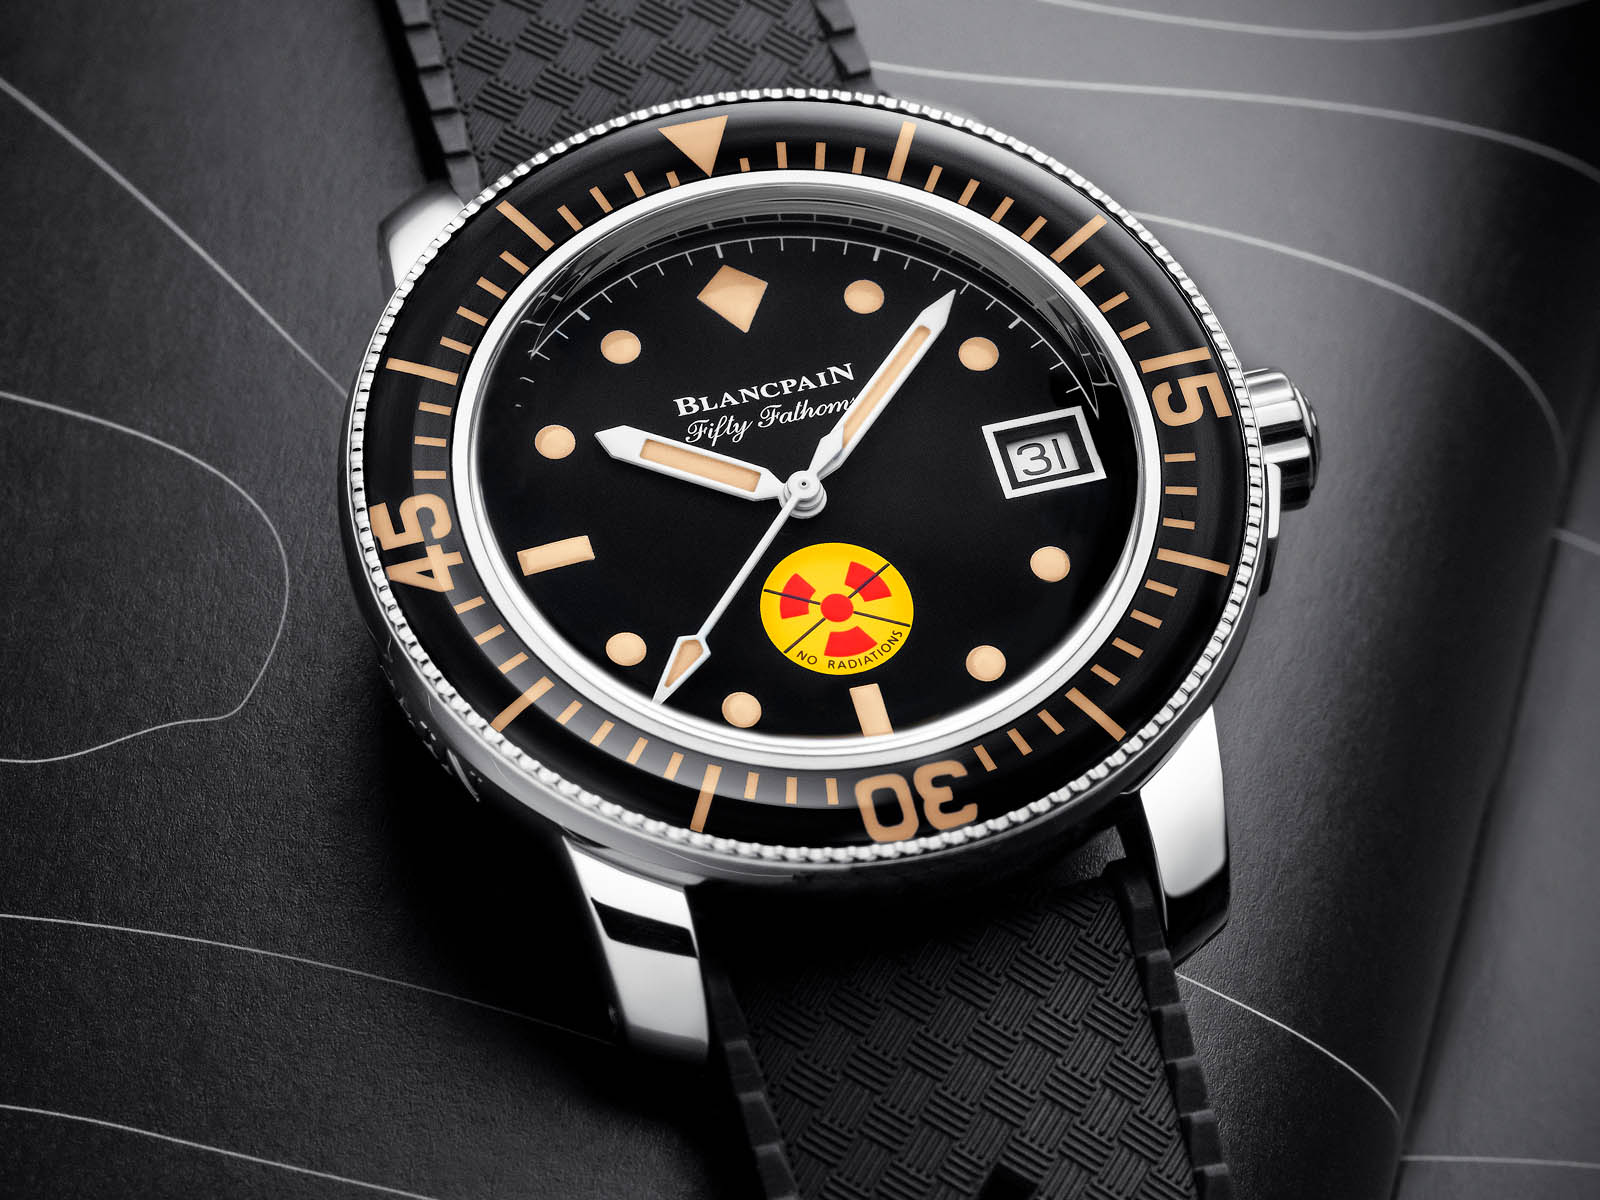 5008d-1130-b64a-blancpain-tribute-to-fifty-fathoms-no-rad-limited-edition-4.jpg